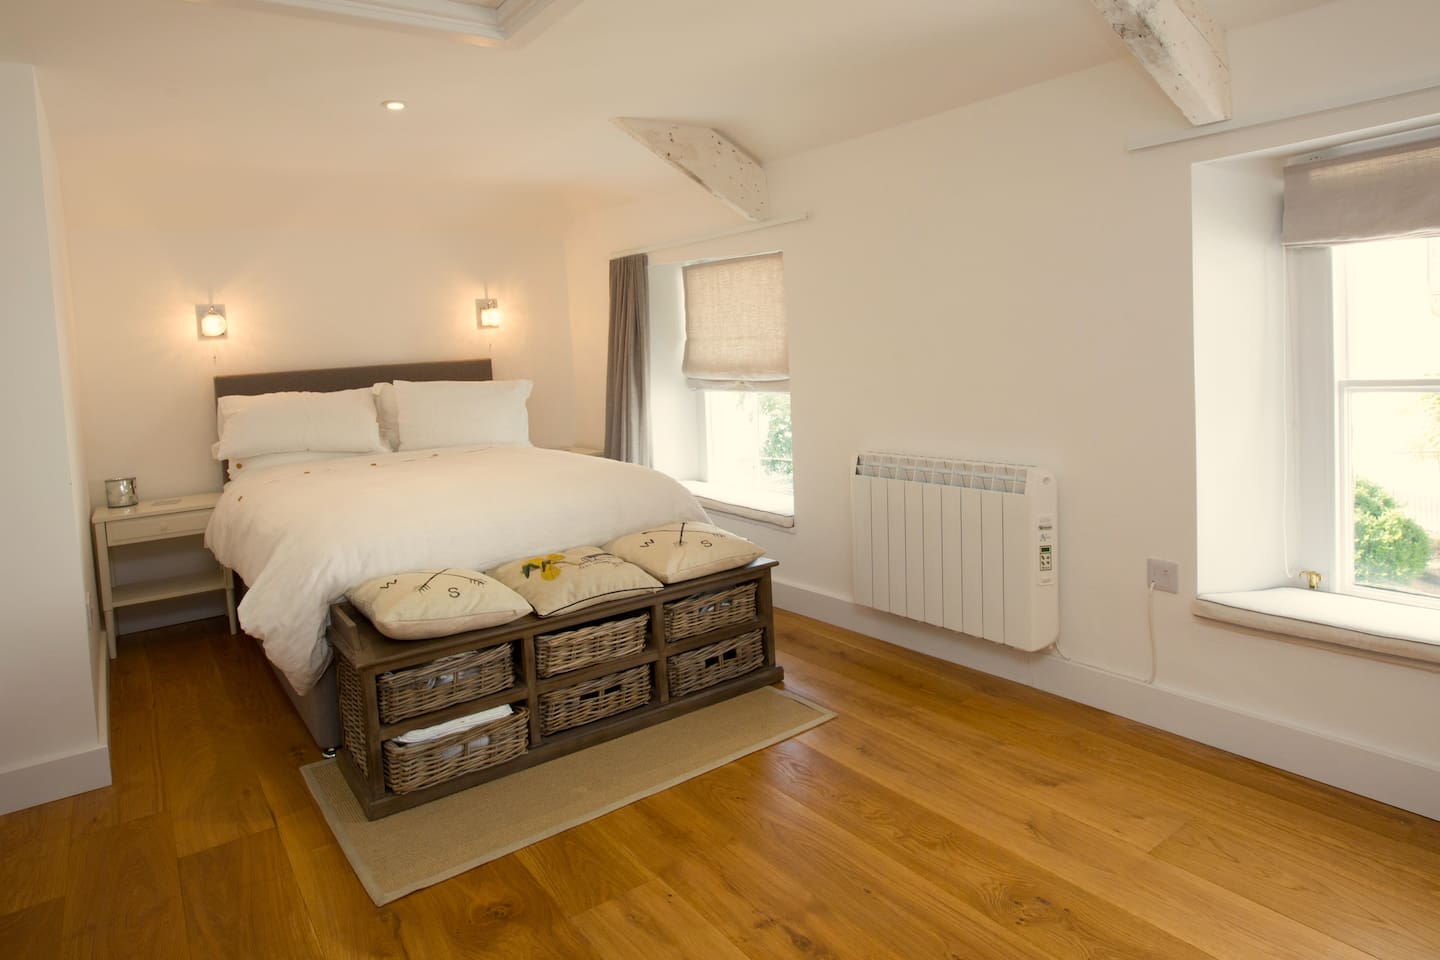 """""""We had a great weekend at Lorraine's house which was very comfortable, cosy and beautifully furnished. Lorraine was very helpful and we felt well looked after."""" ***** - Elizabeth - Dec 18"""